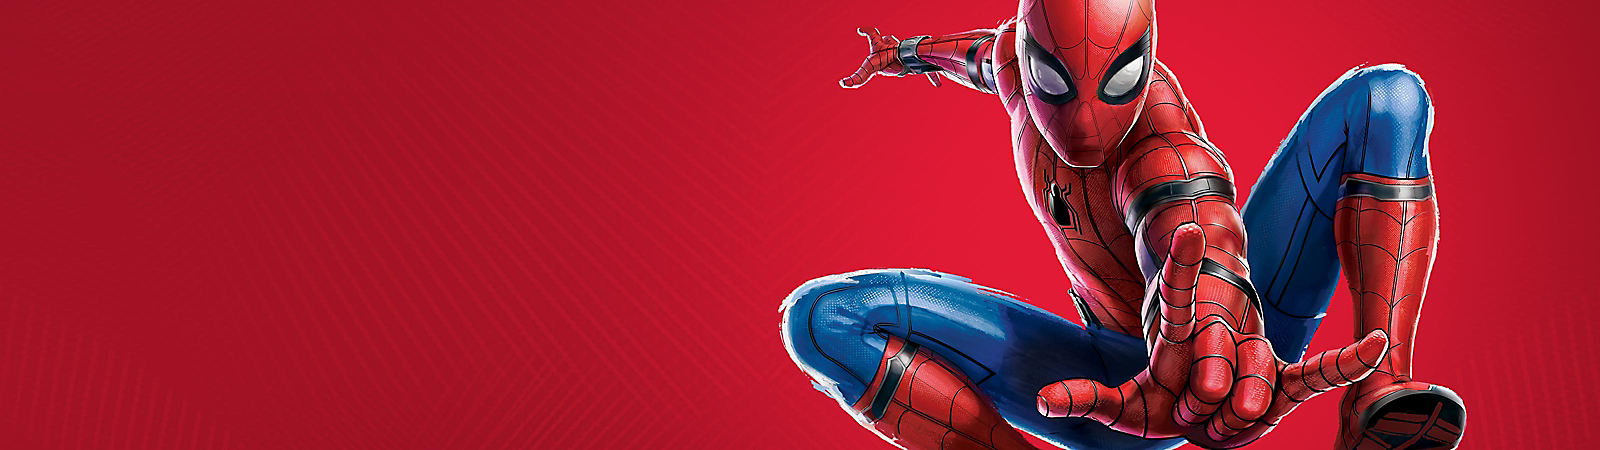 Background image of Marvel Clothing